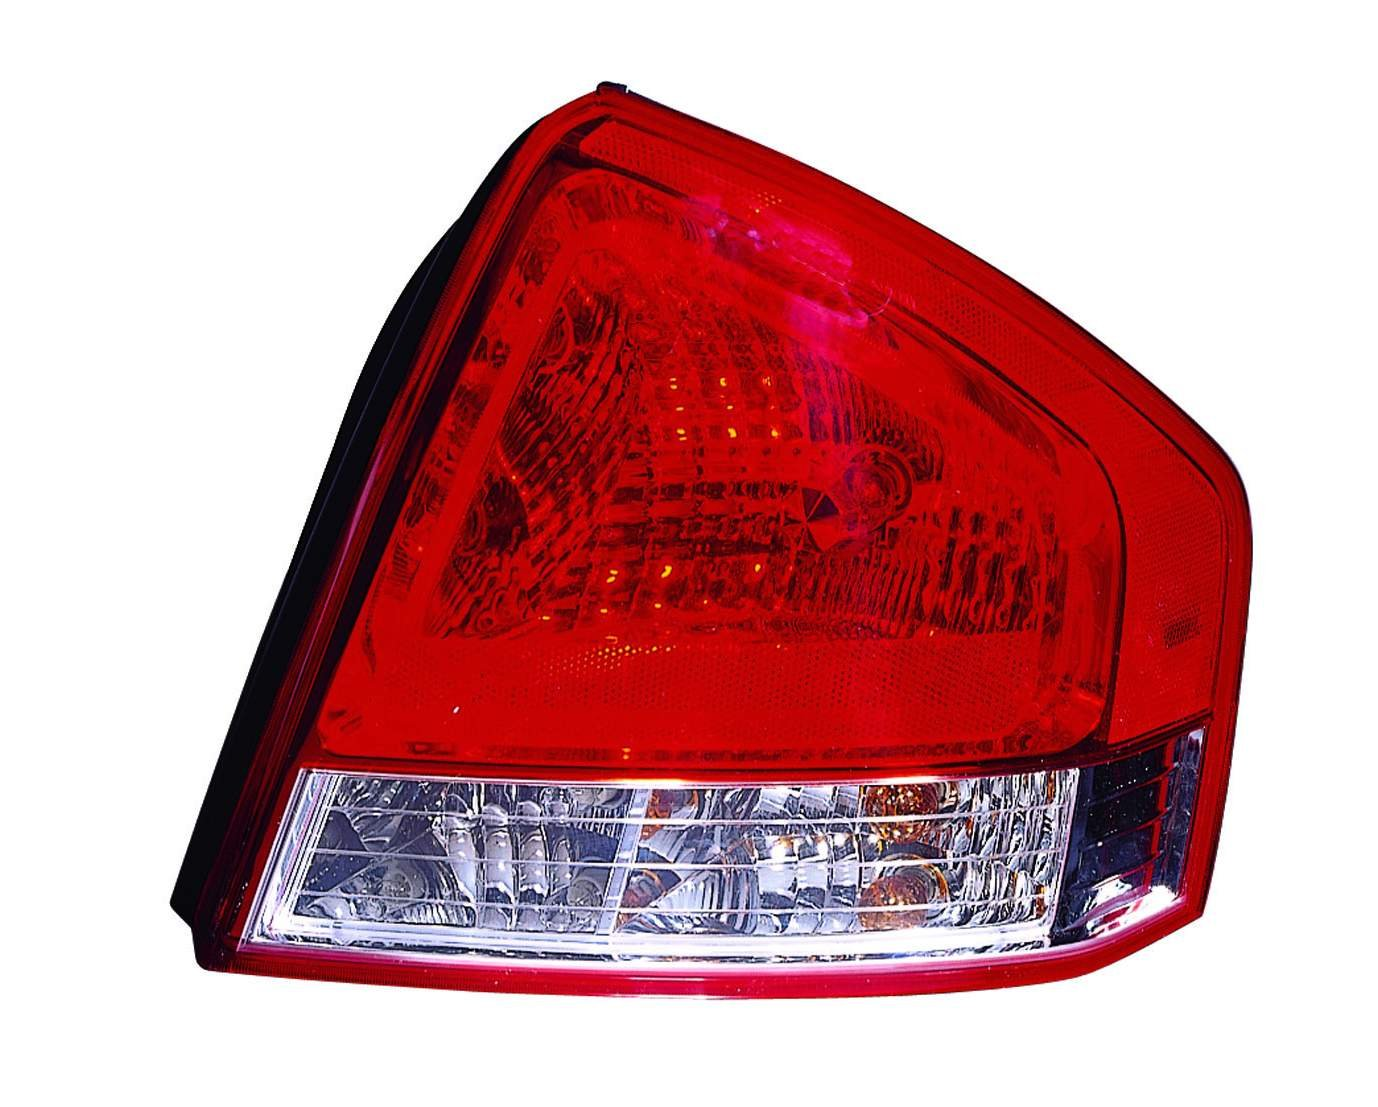 Depo 323-1926R-ASN Kia Spectra Passenger Side Replacement Taillight Assembly